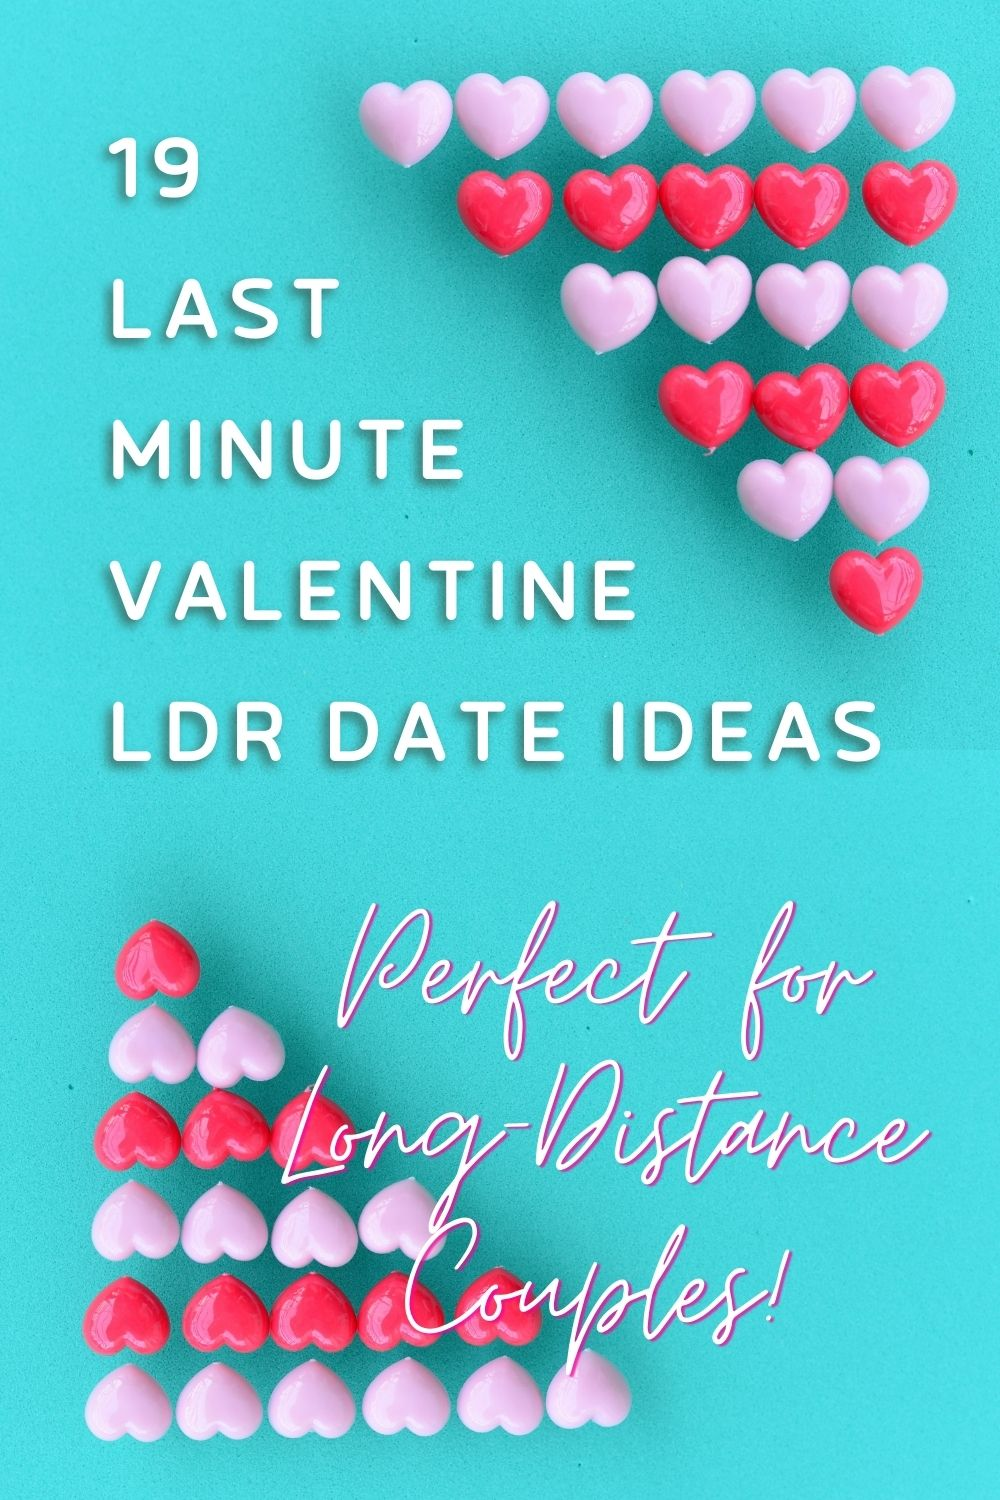 Things for long distance couples to do on valentines day